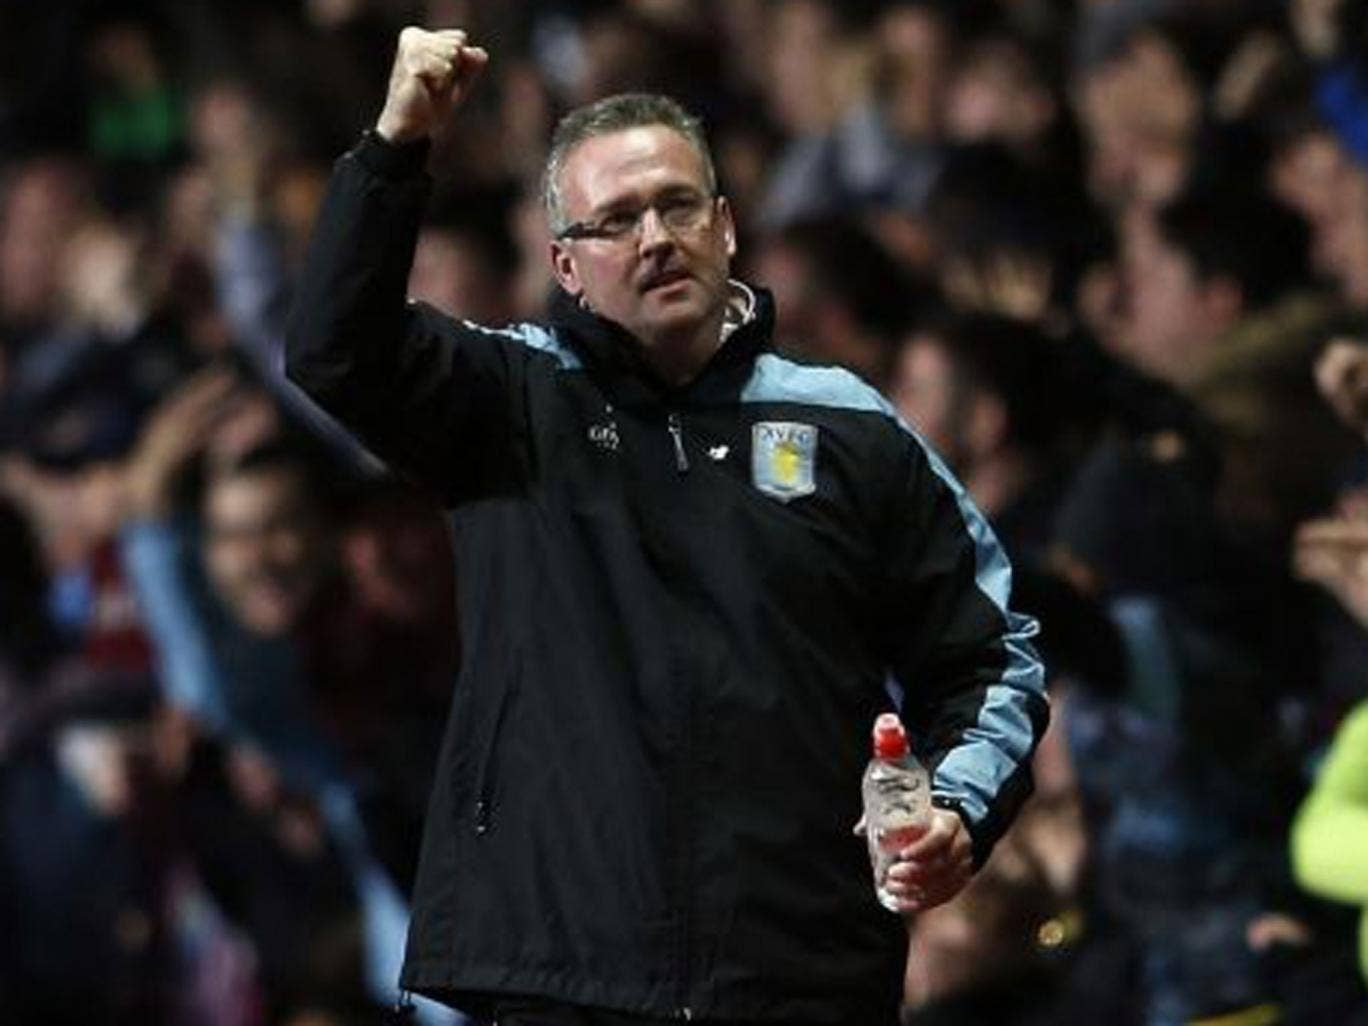 Aston Villa's manager Paul Lambert reacts during their English Premier League soccer match against Sunderland at Villa Park in Birmingham